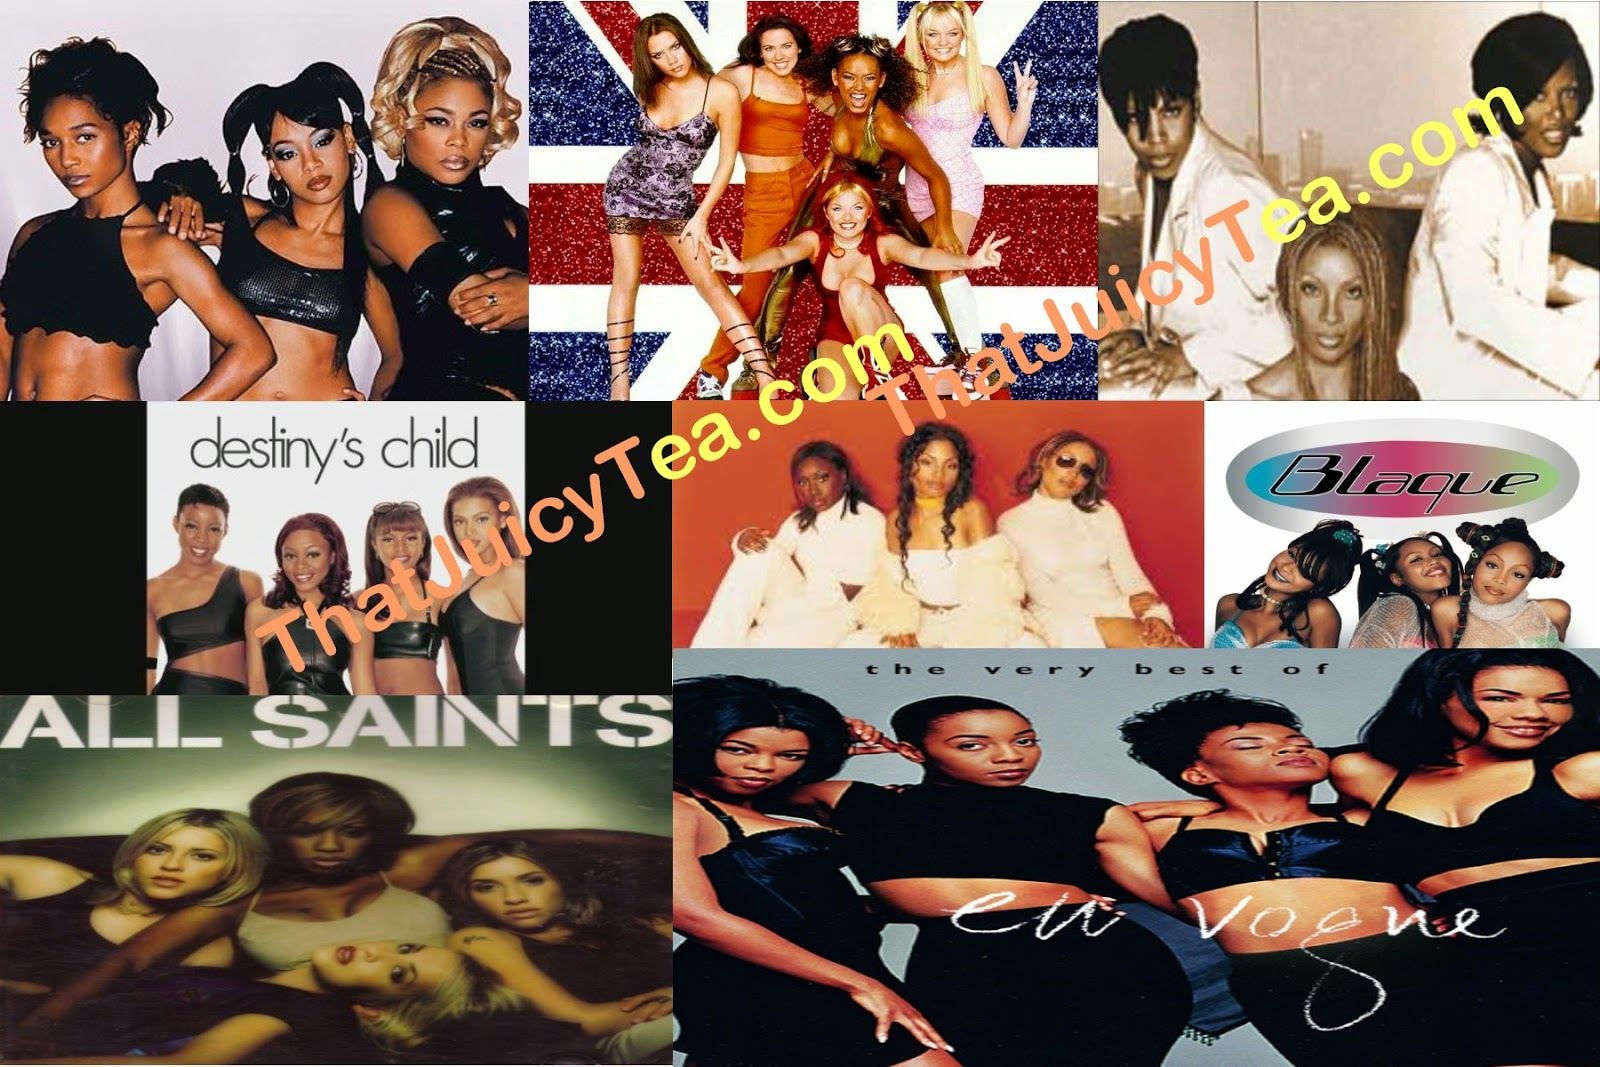 The 90's had some awesome music and though it wasn't the best, compared to the '60s, 70's and '80s, some memorable girl groups were together during the '90s ...